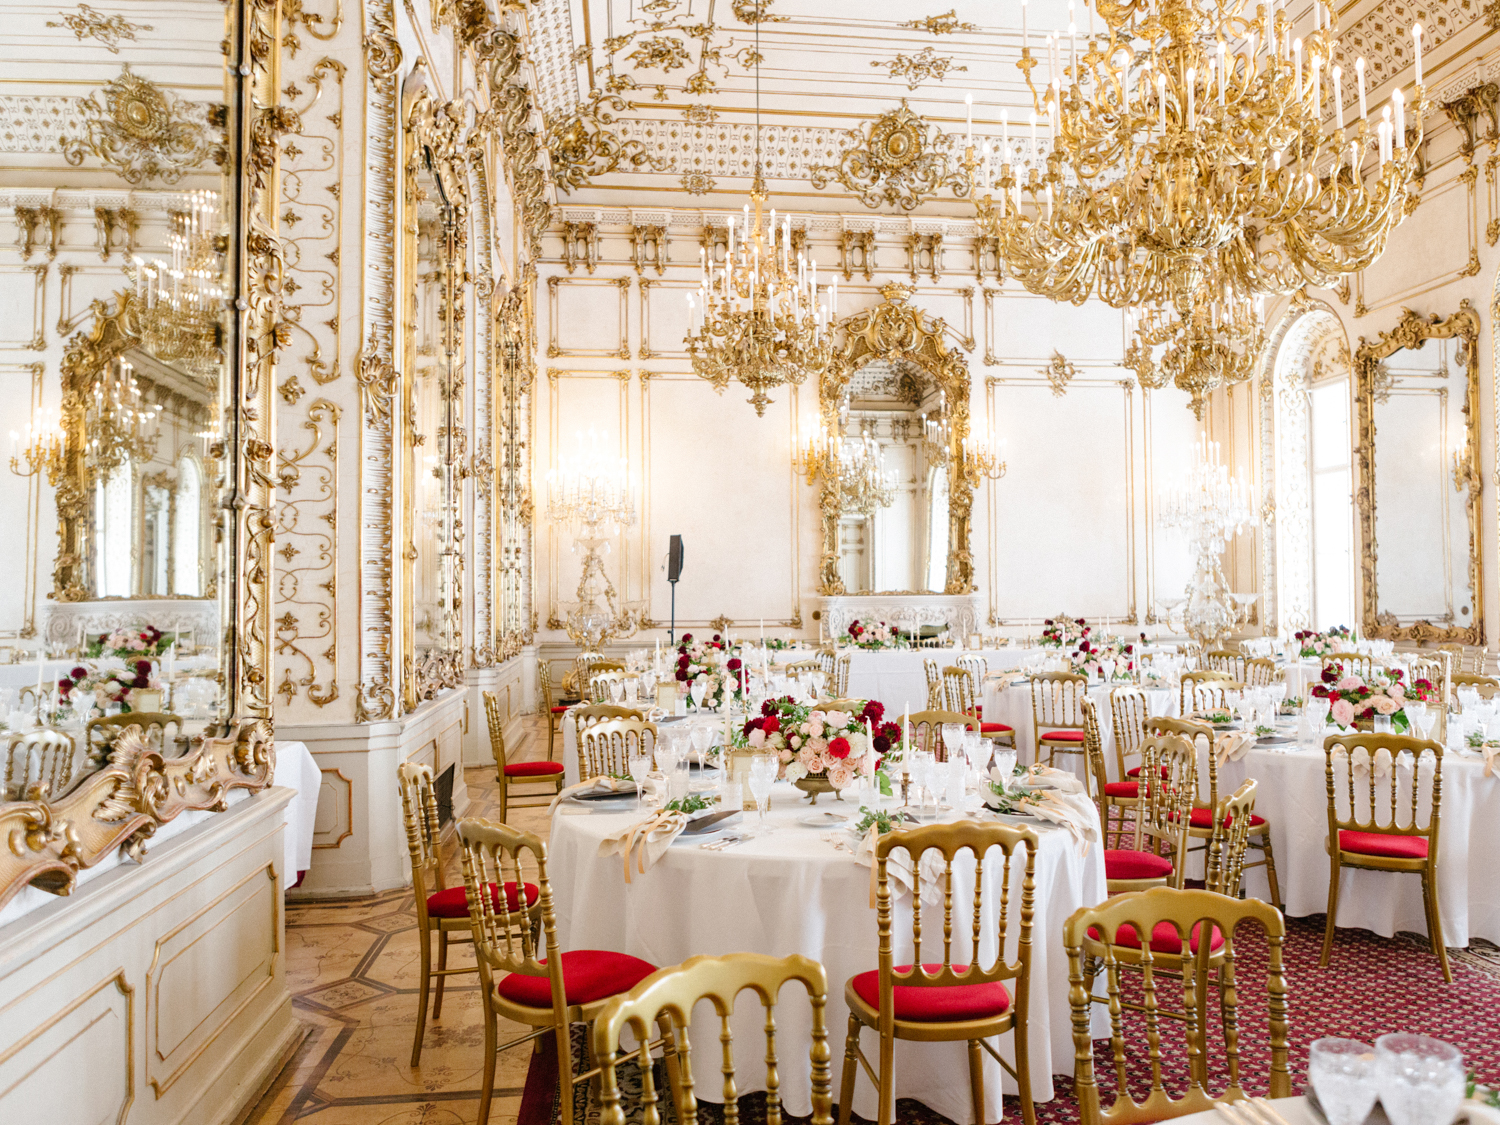 palais pallavicini wedding hotel imperial vienna wedding photographer nikol bodnarova photography 139.JPG